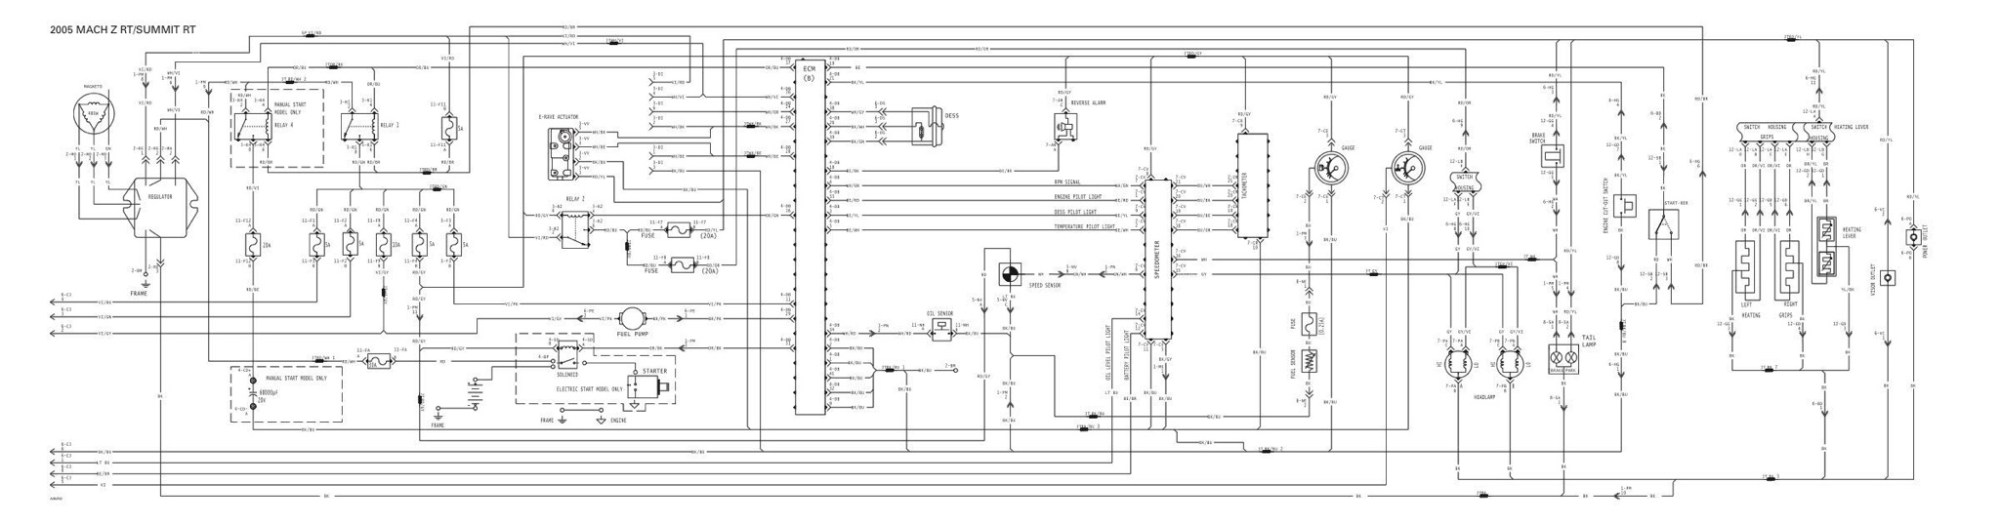 hight resolution of 1000 sdi mach z wiring diagram mach z rt and mxz 1000 sdi models9ad6df6de3ee10c1320e8f7708396591 jpg